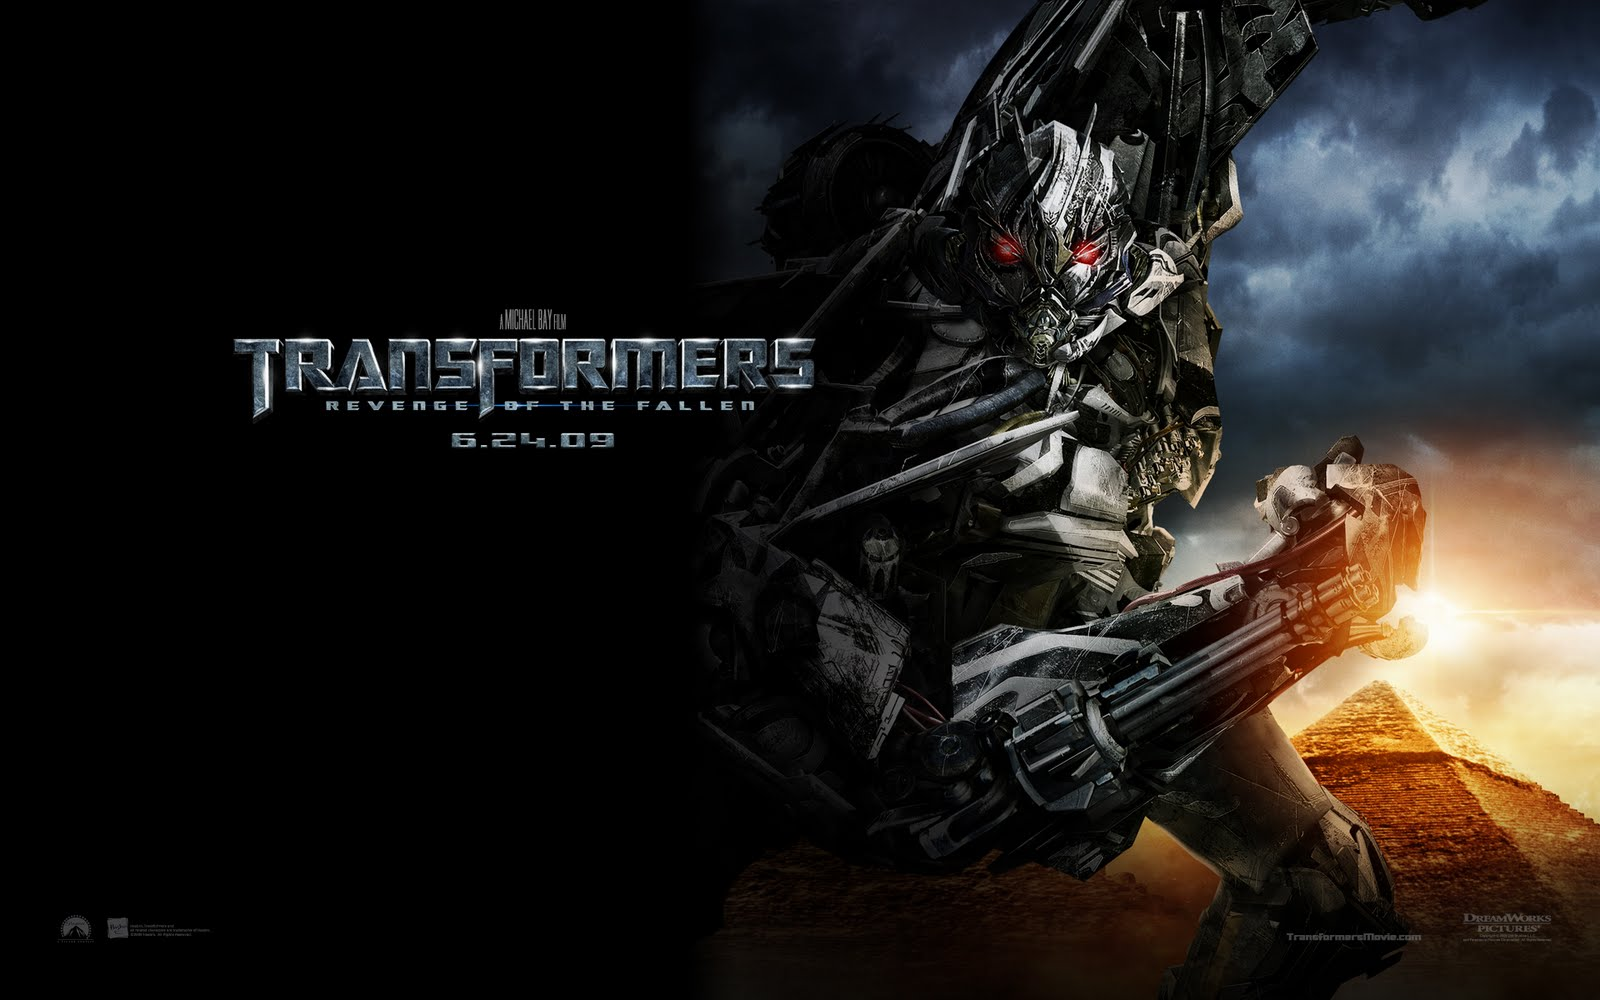 transformer 3 dark of the moon movie wallpaper, images, picture and